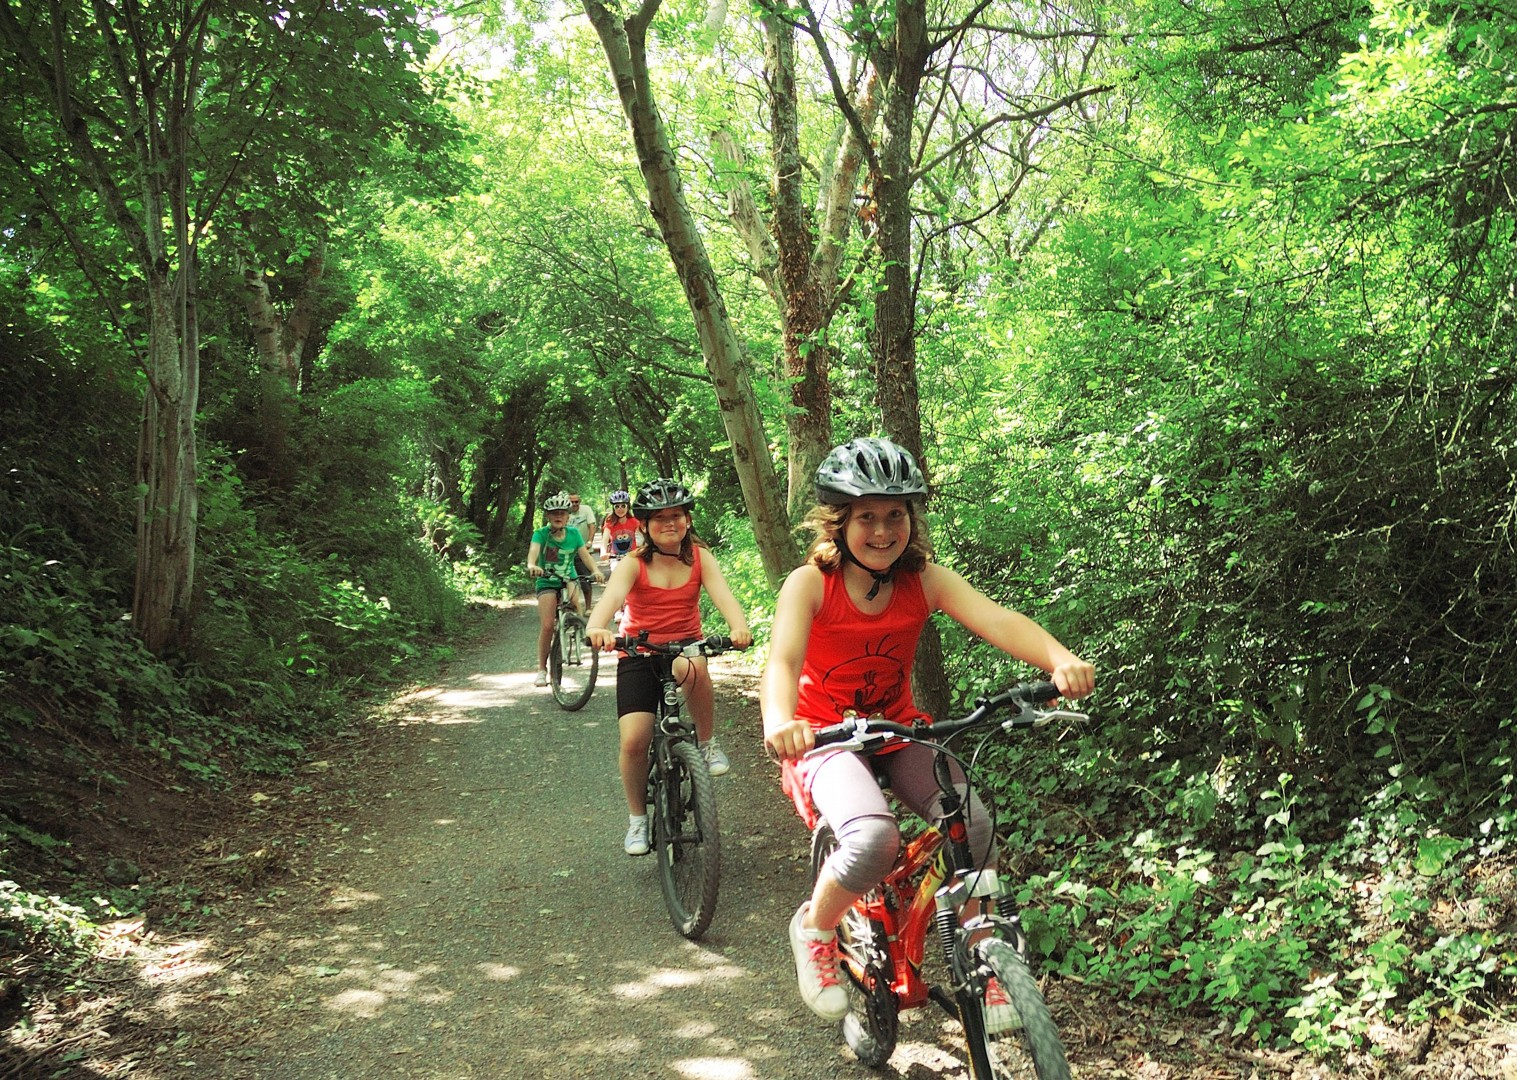 Peak-District-Guided-Family-Bike-Skills-Derbyshire-UK.jpg - UK - Derbyshire - Guided Family Bike Skills - Family Cycling